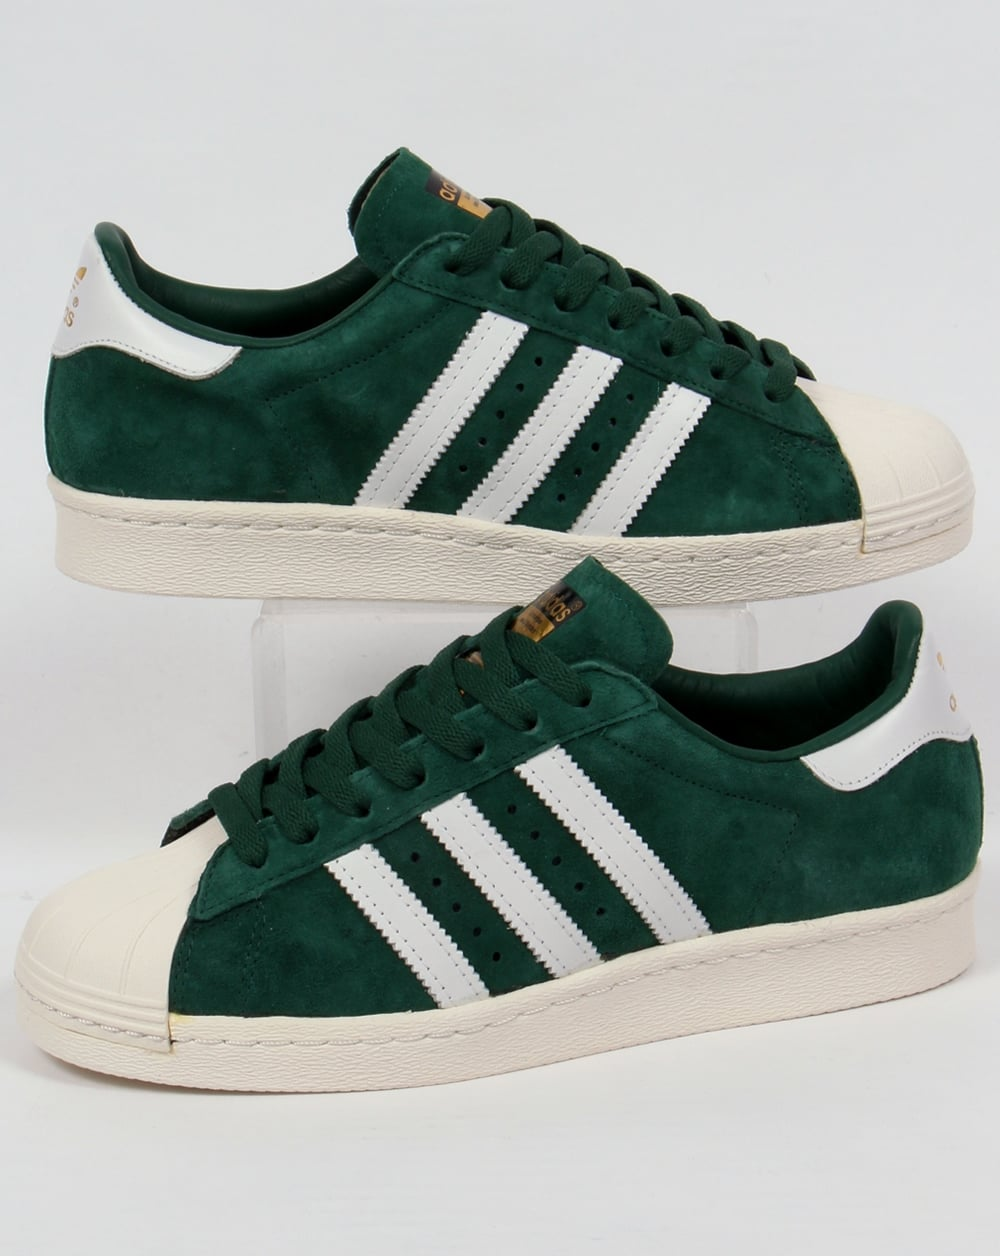 sale retailer b3003 994b6 adidas Trainers Adidas Superstar 80s Deluxe Trainers Dark GreenWhite